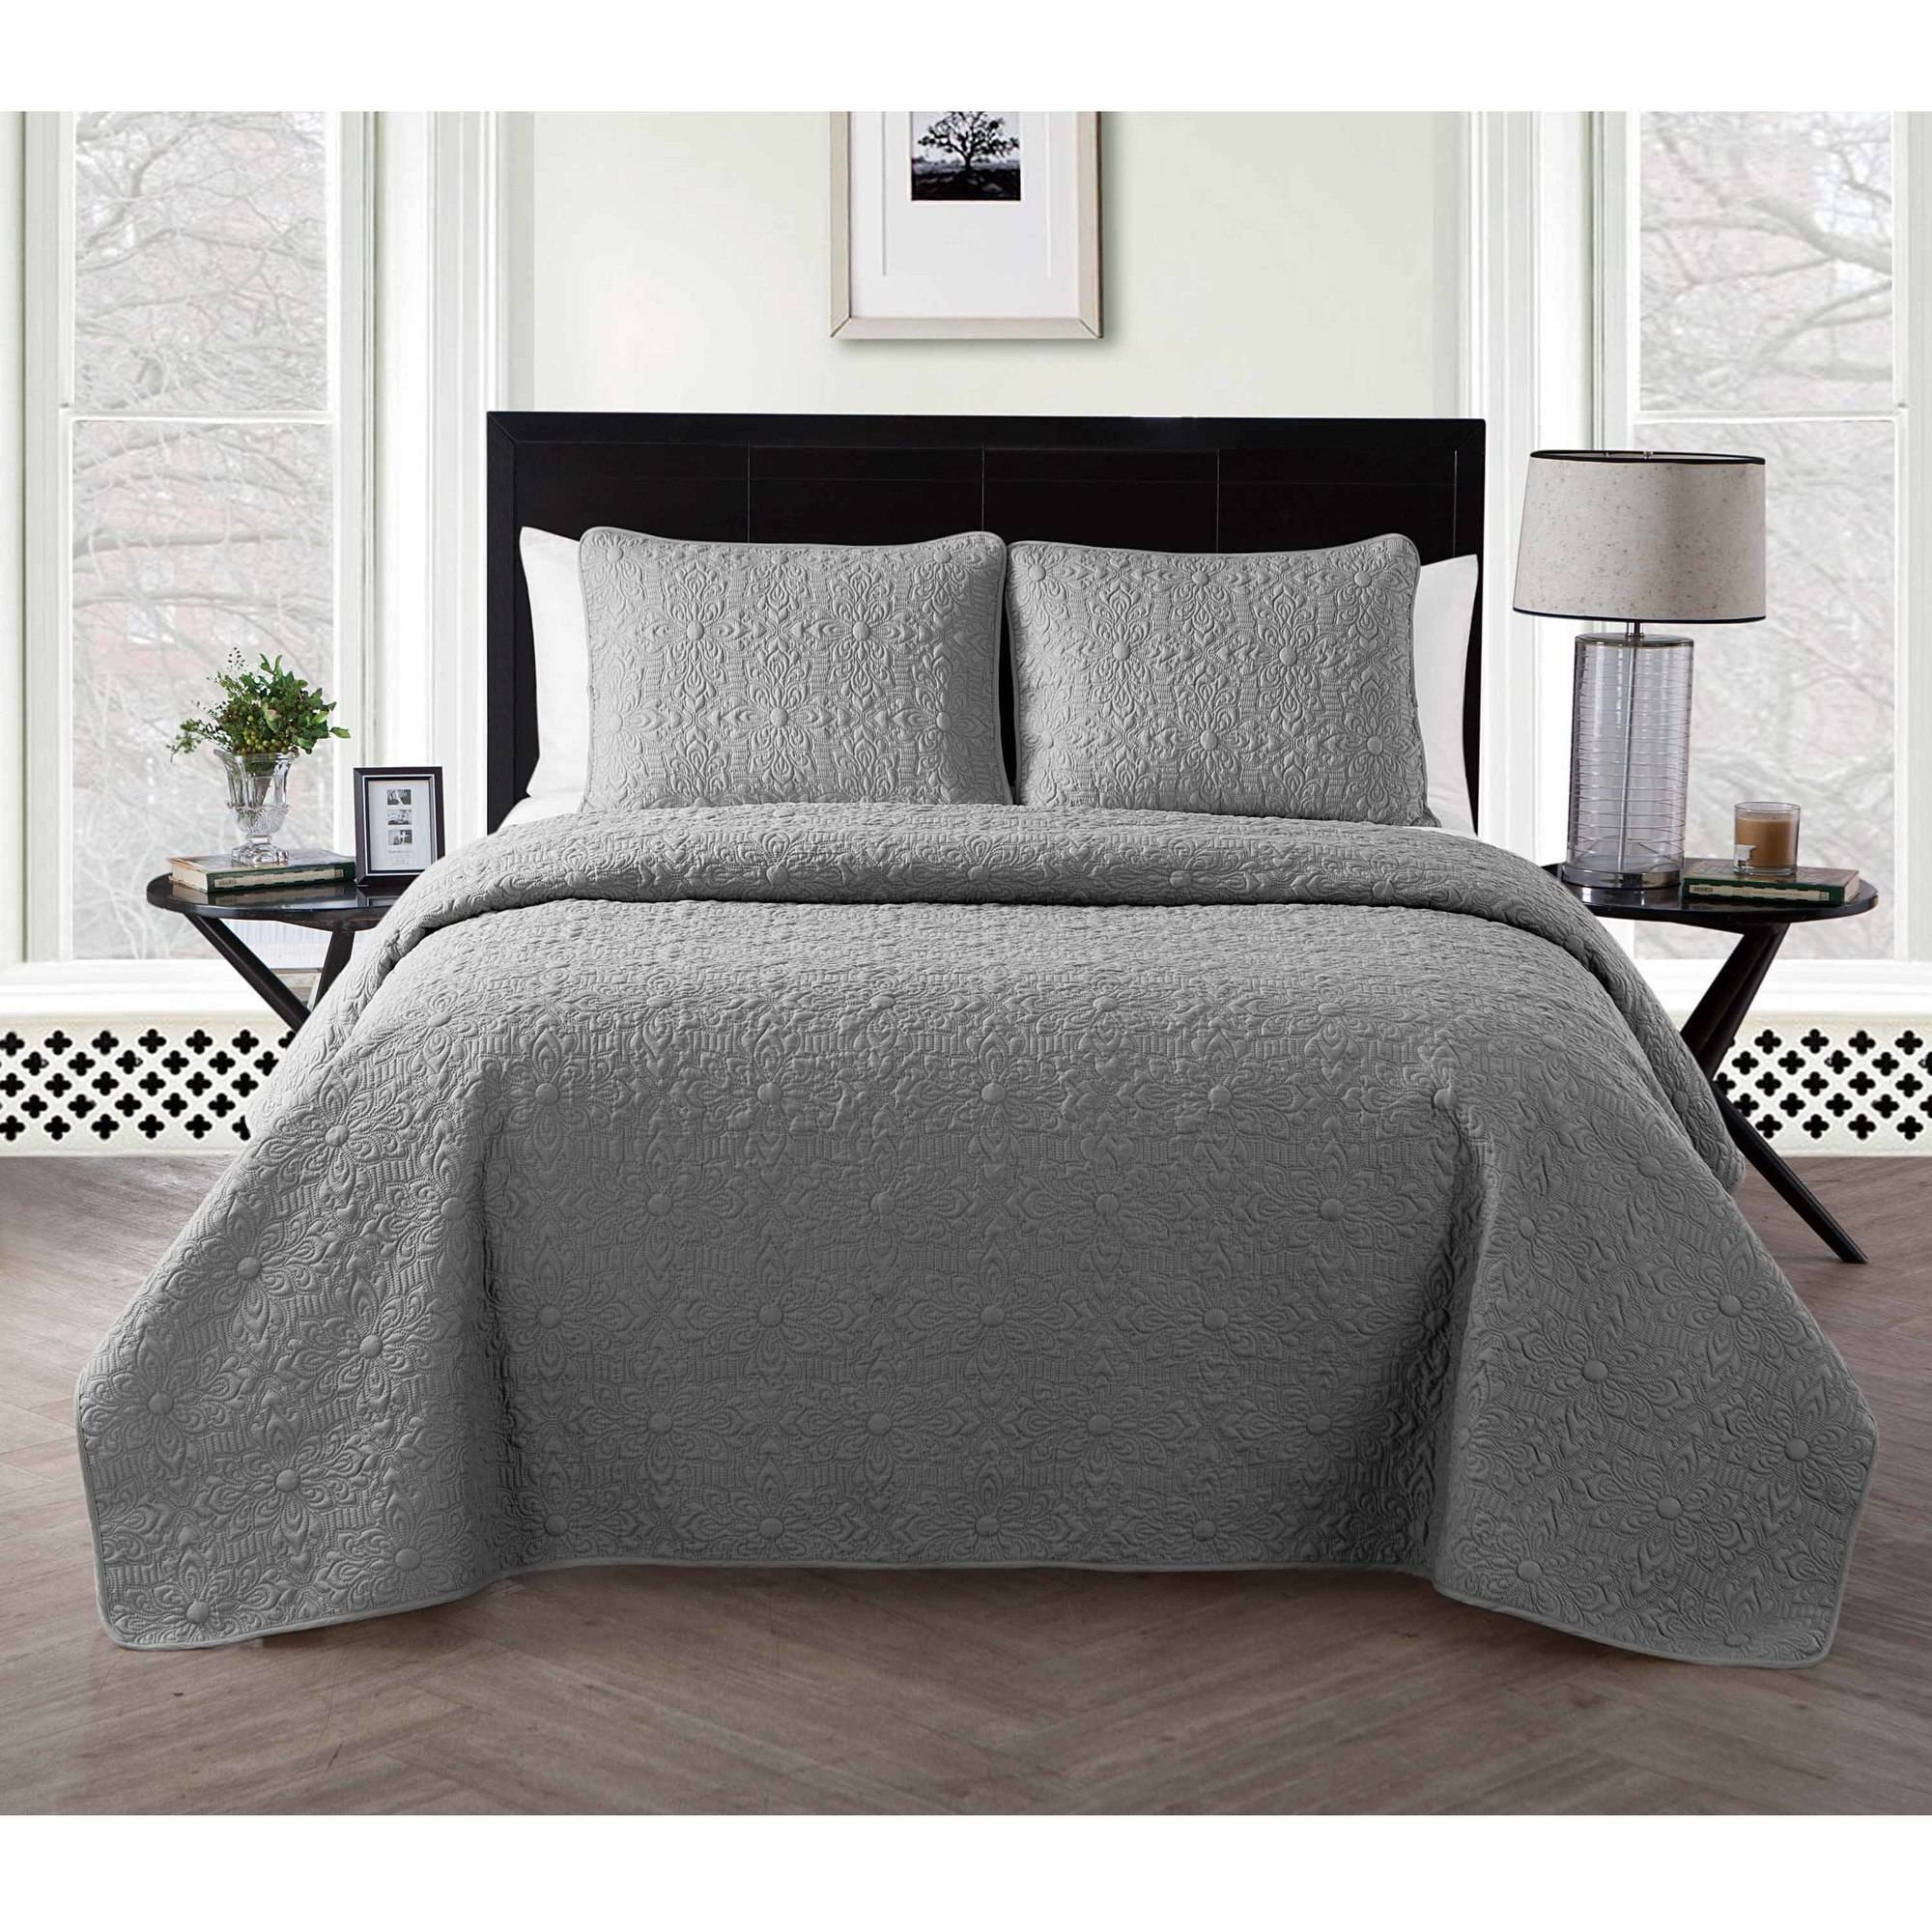 touch tealedding clearance comforter full sage of impressive comforters setsking size gray cooledsump bedding bedroom teal pictures class and bed king ideas coral sets